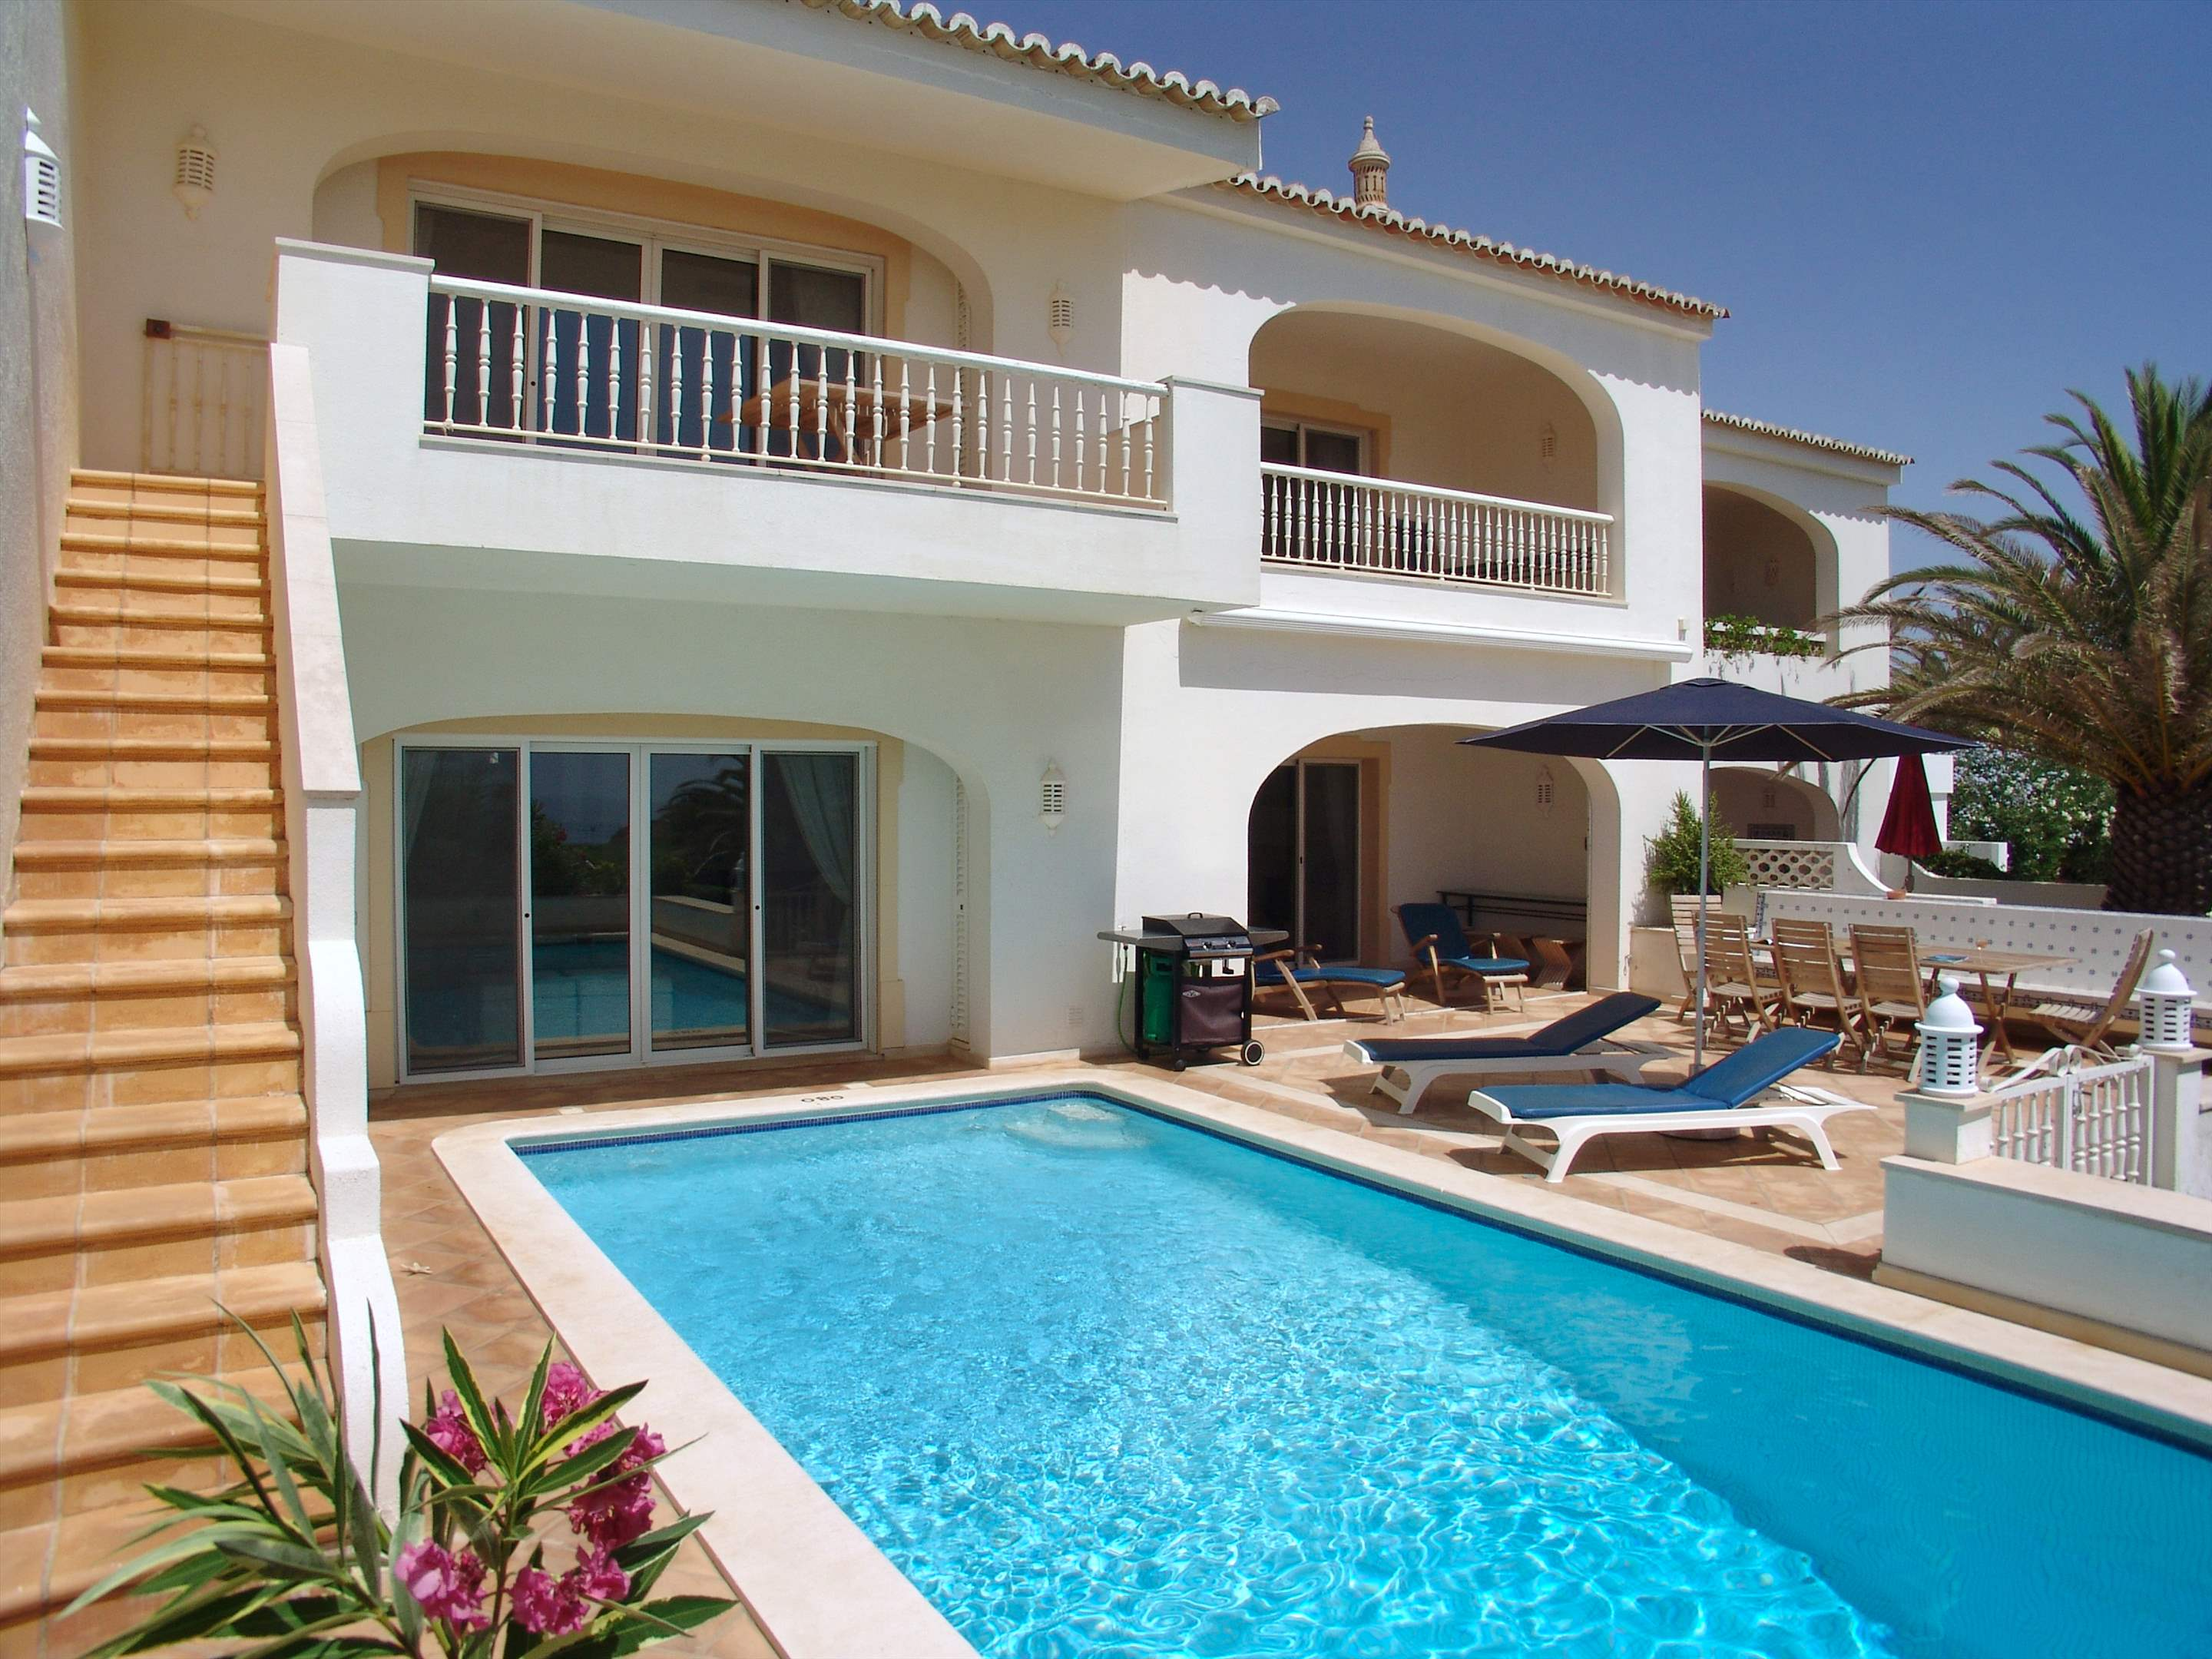 Villas Louisa, 4 Bedroom, 4 bedroom villa in Vale do Lobo, Algarve Photo #1